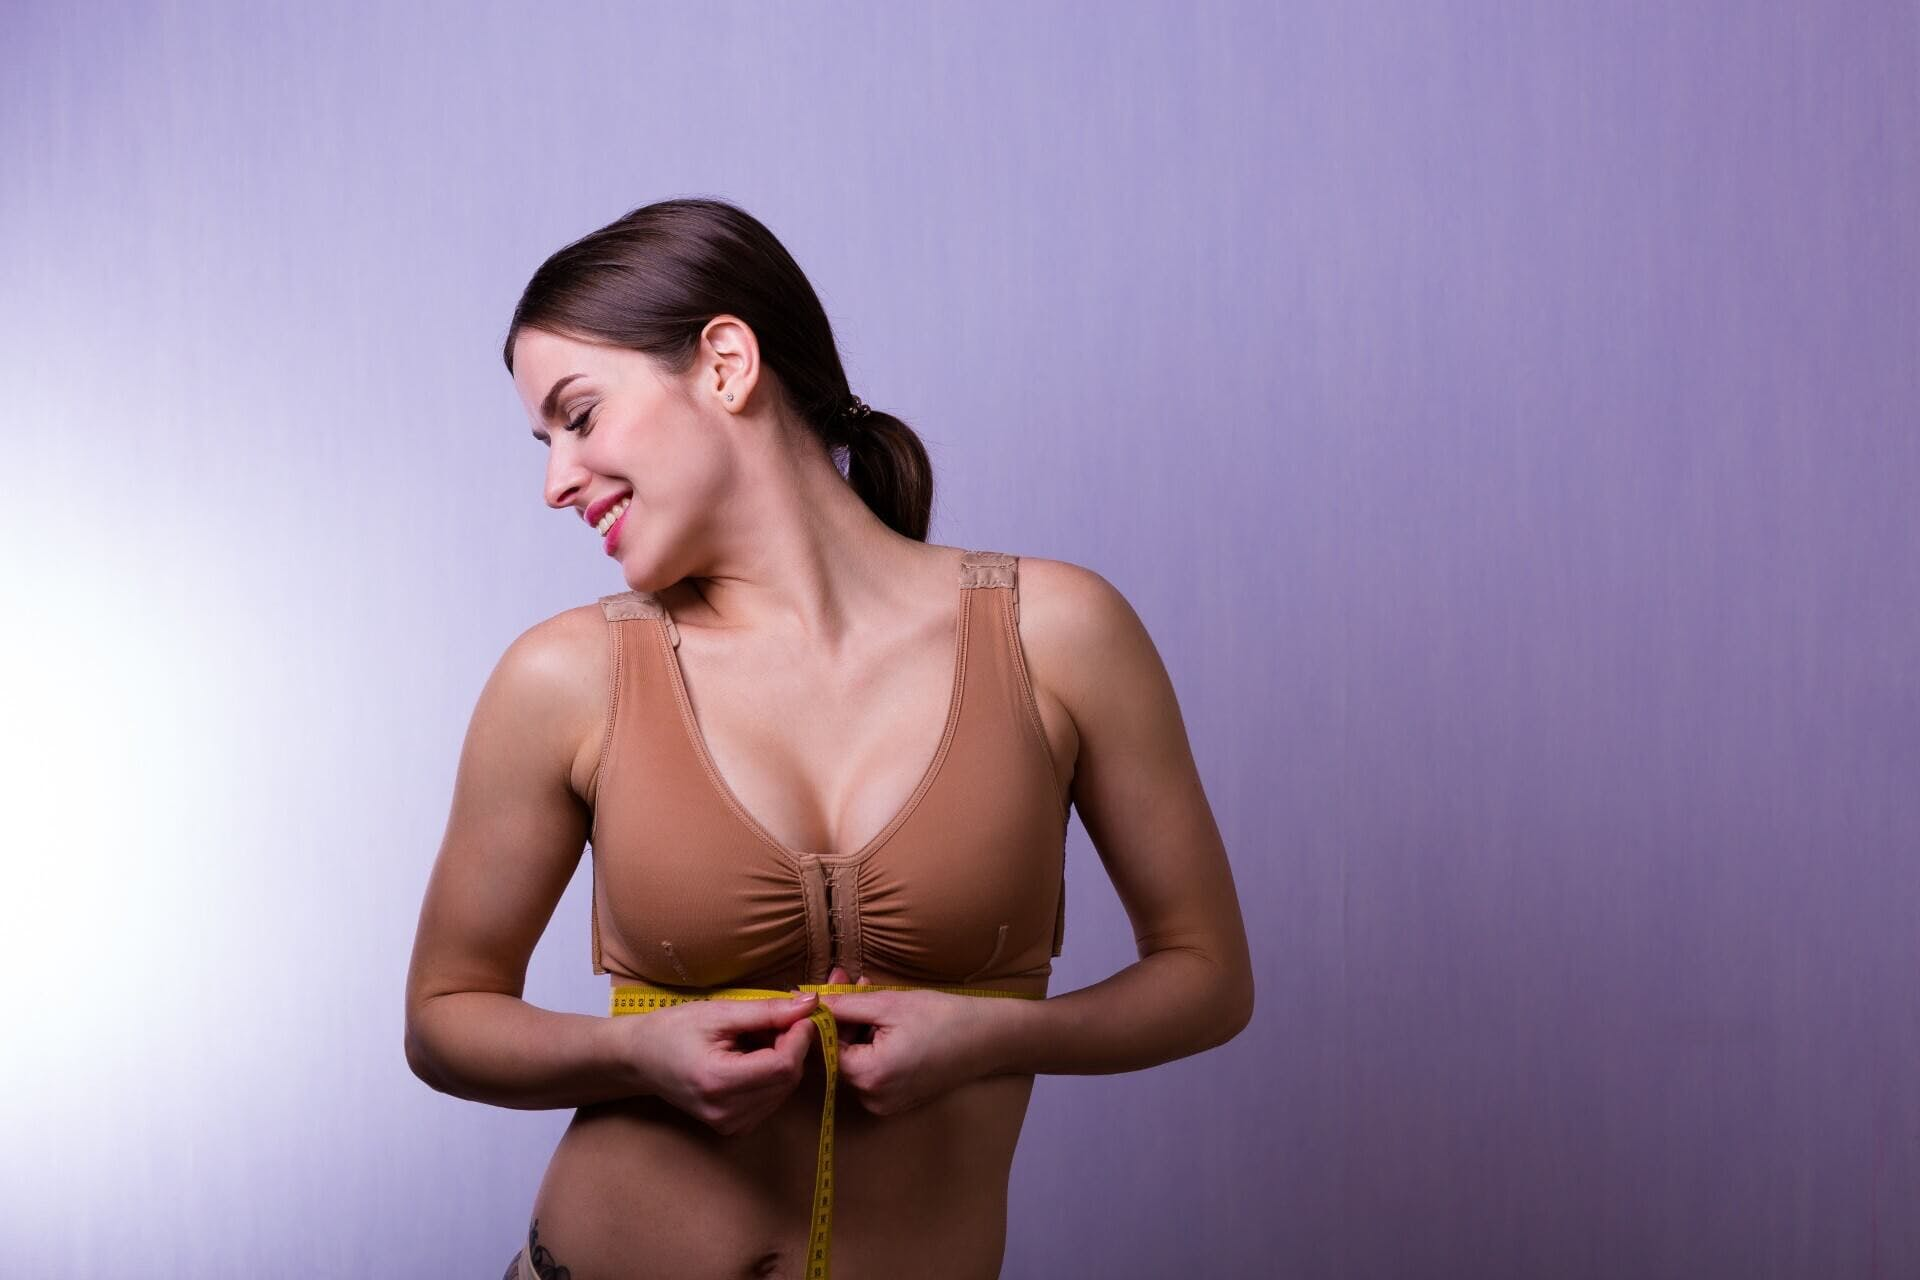 Woman smiling and wrapping breast with love metric